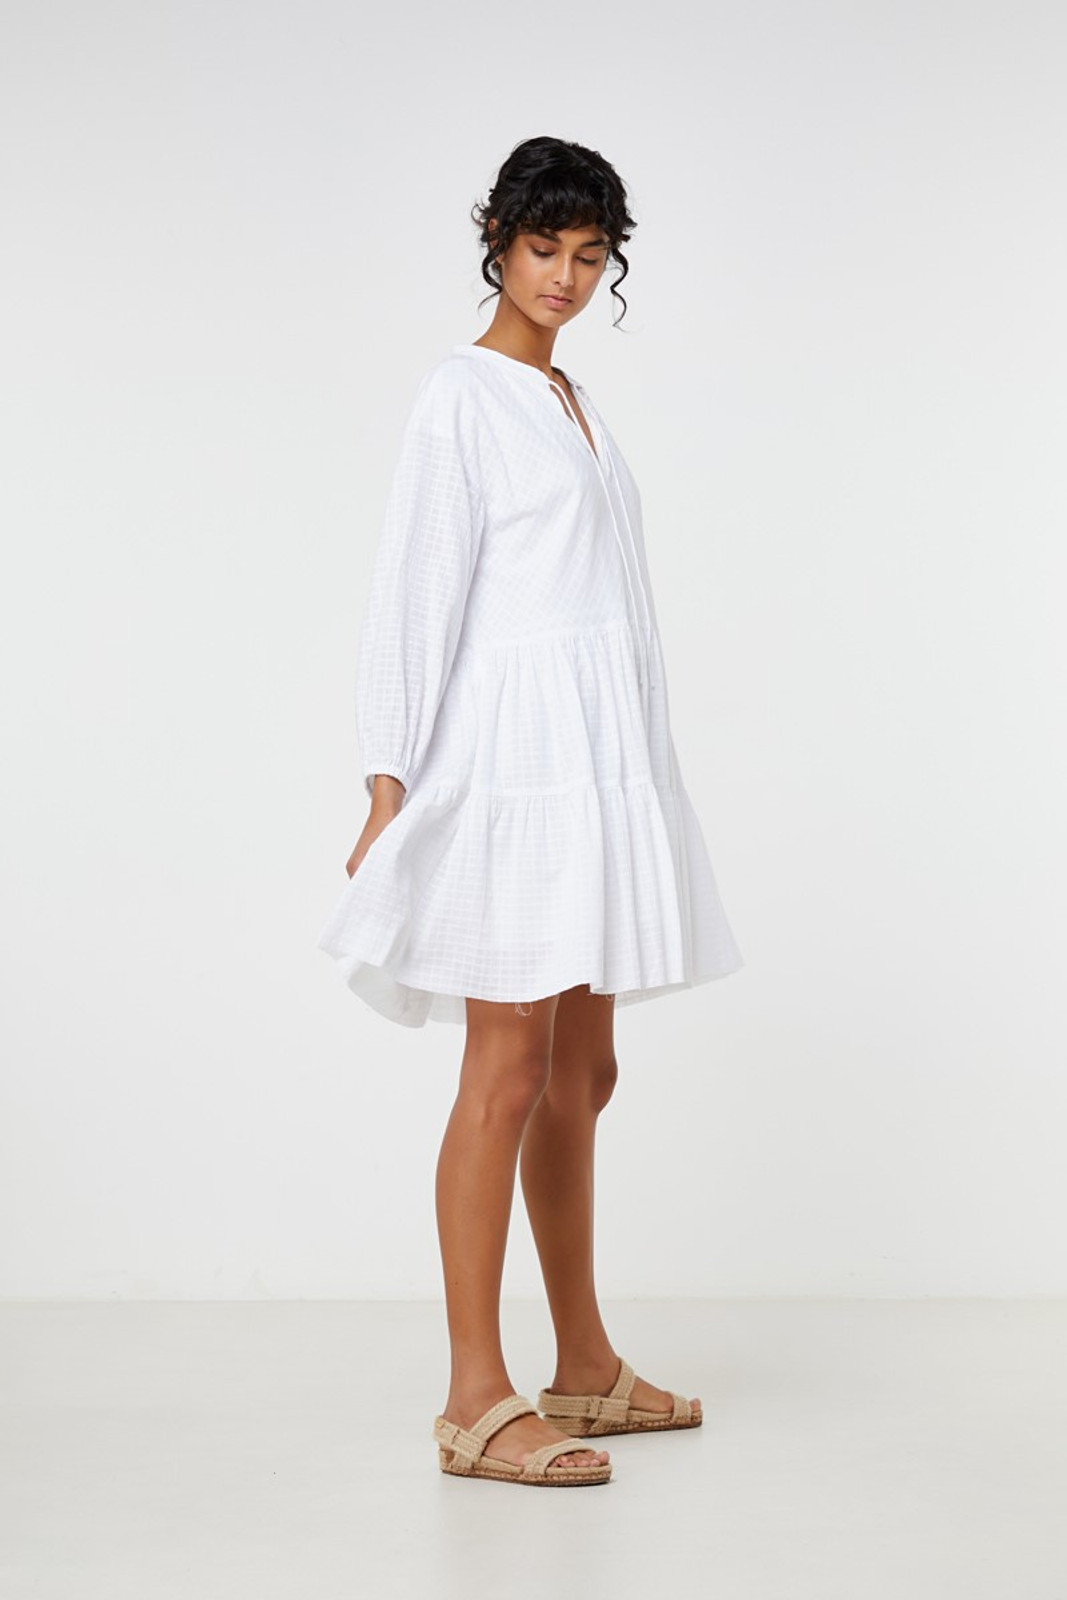 Elka Collective Ophelie Dress White  6